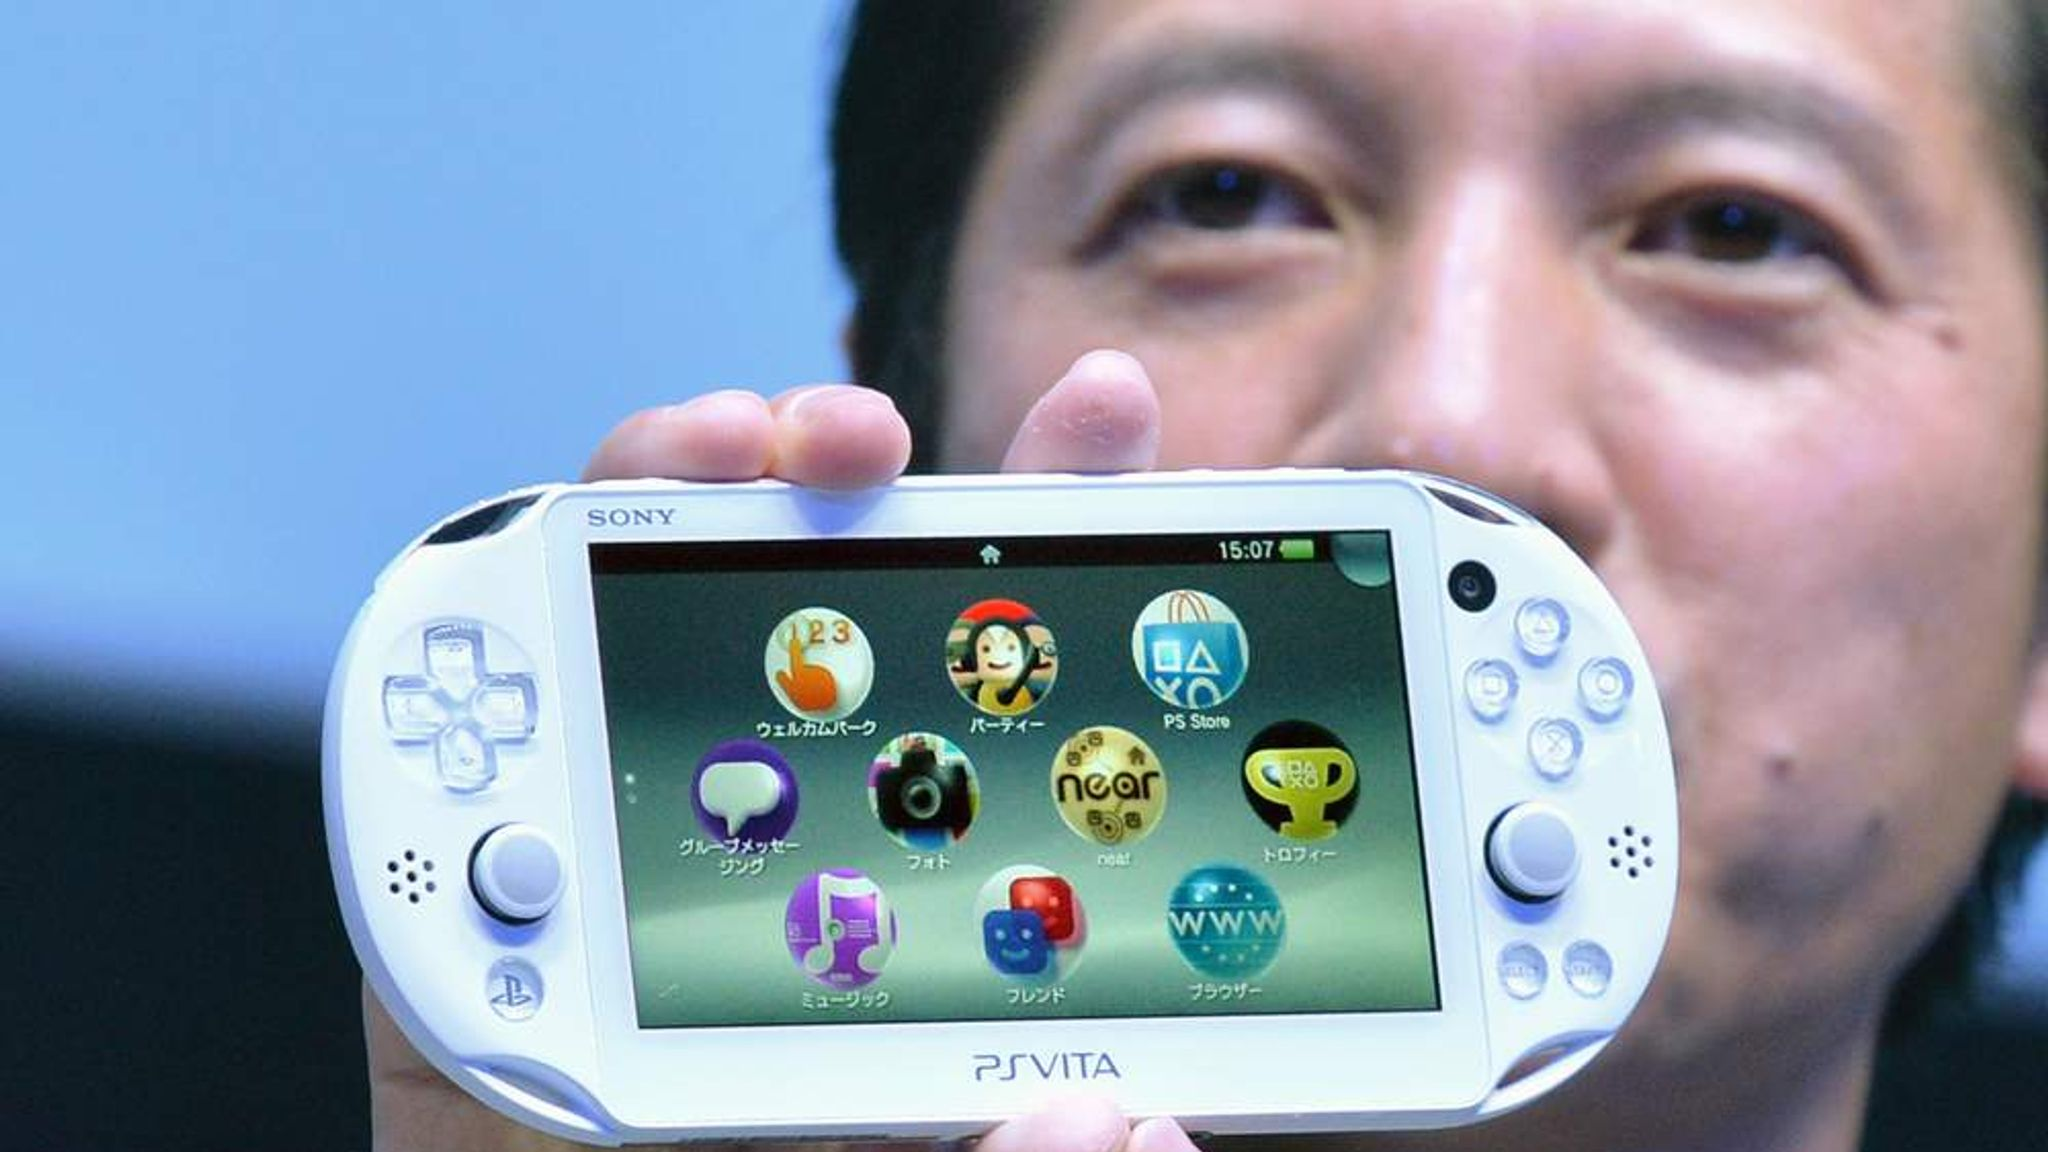 Ps Vita 00 Sony Launches Console And Tv Box Science Tech News Sky News